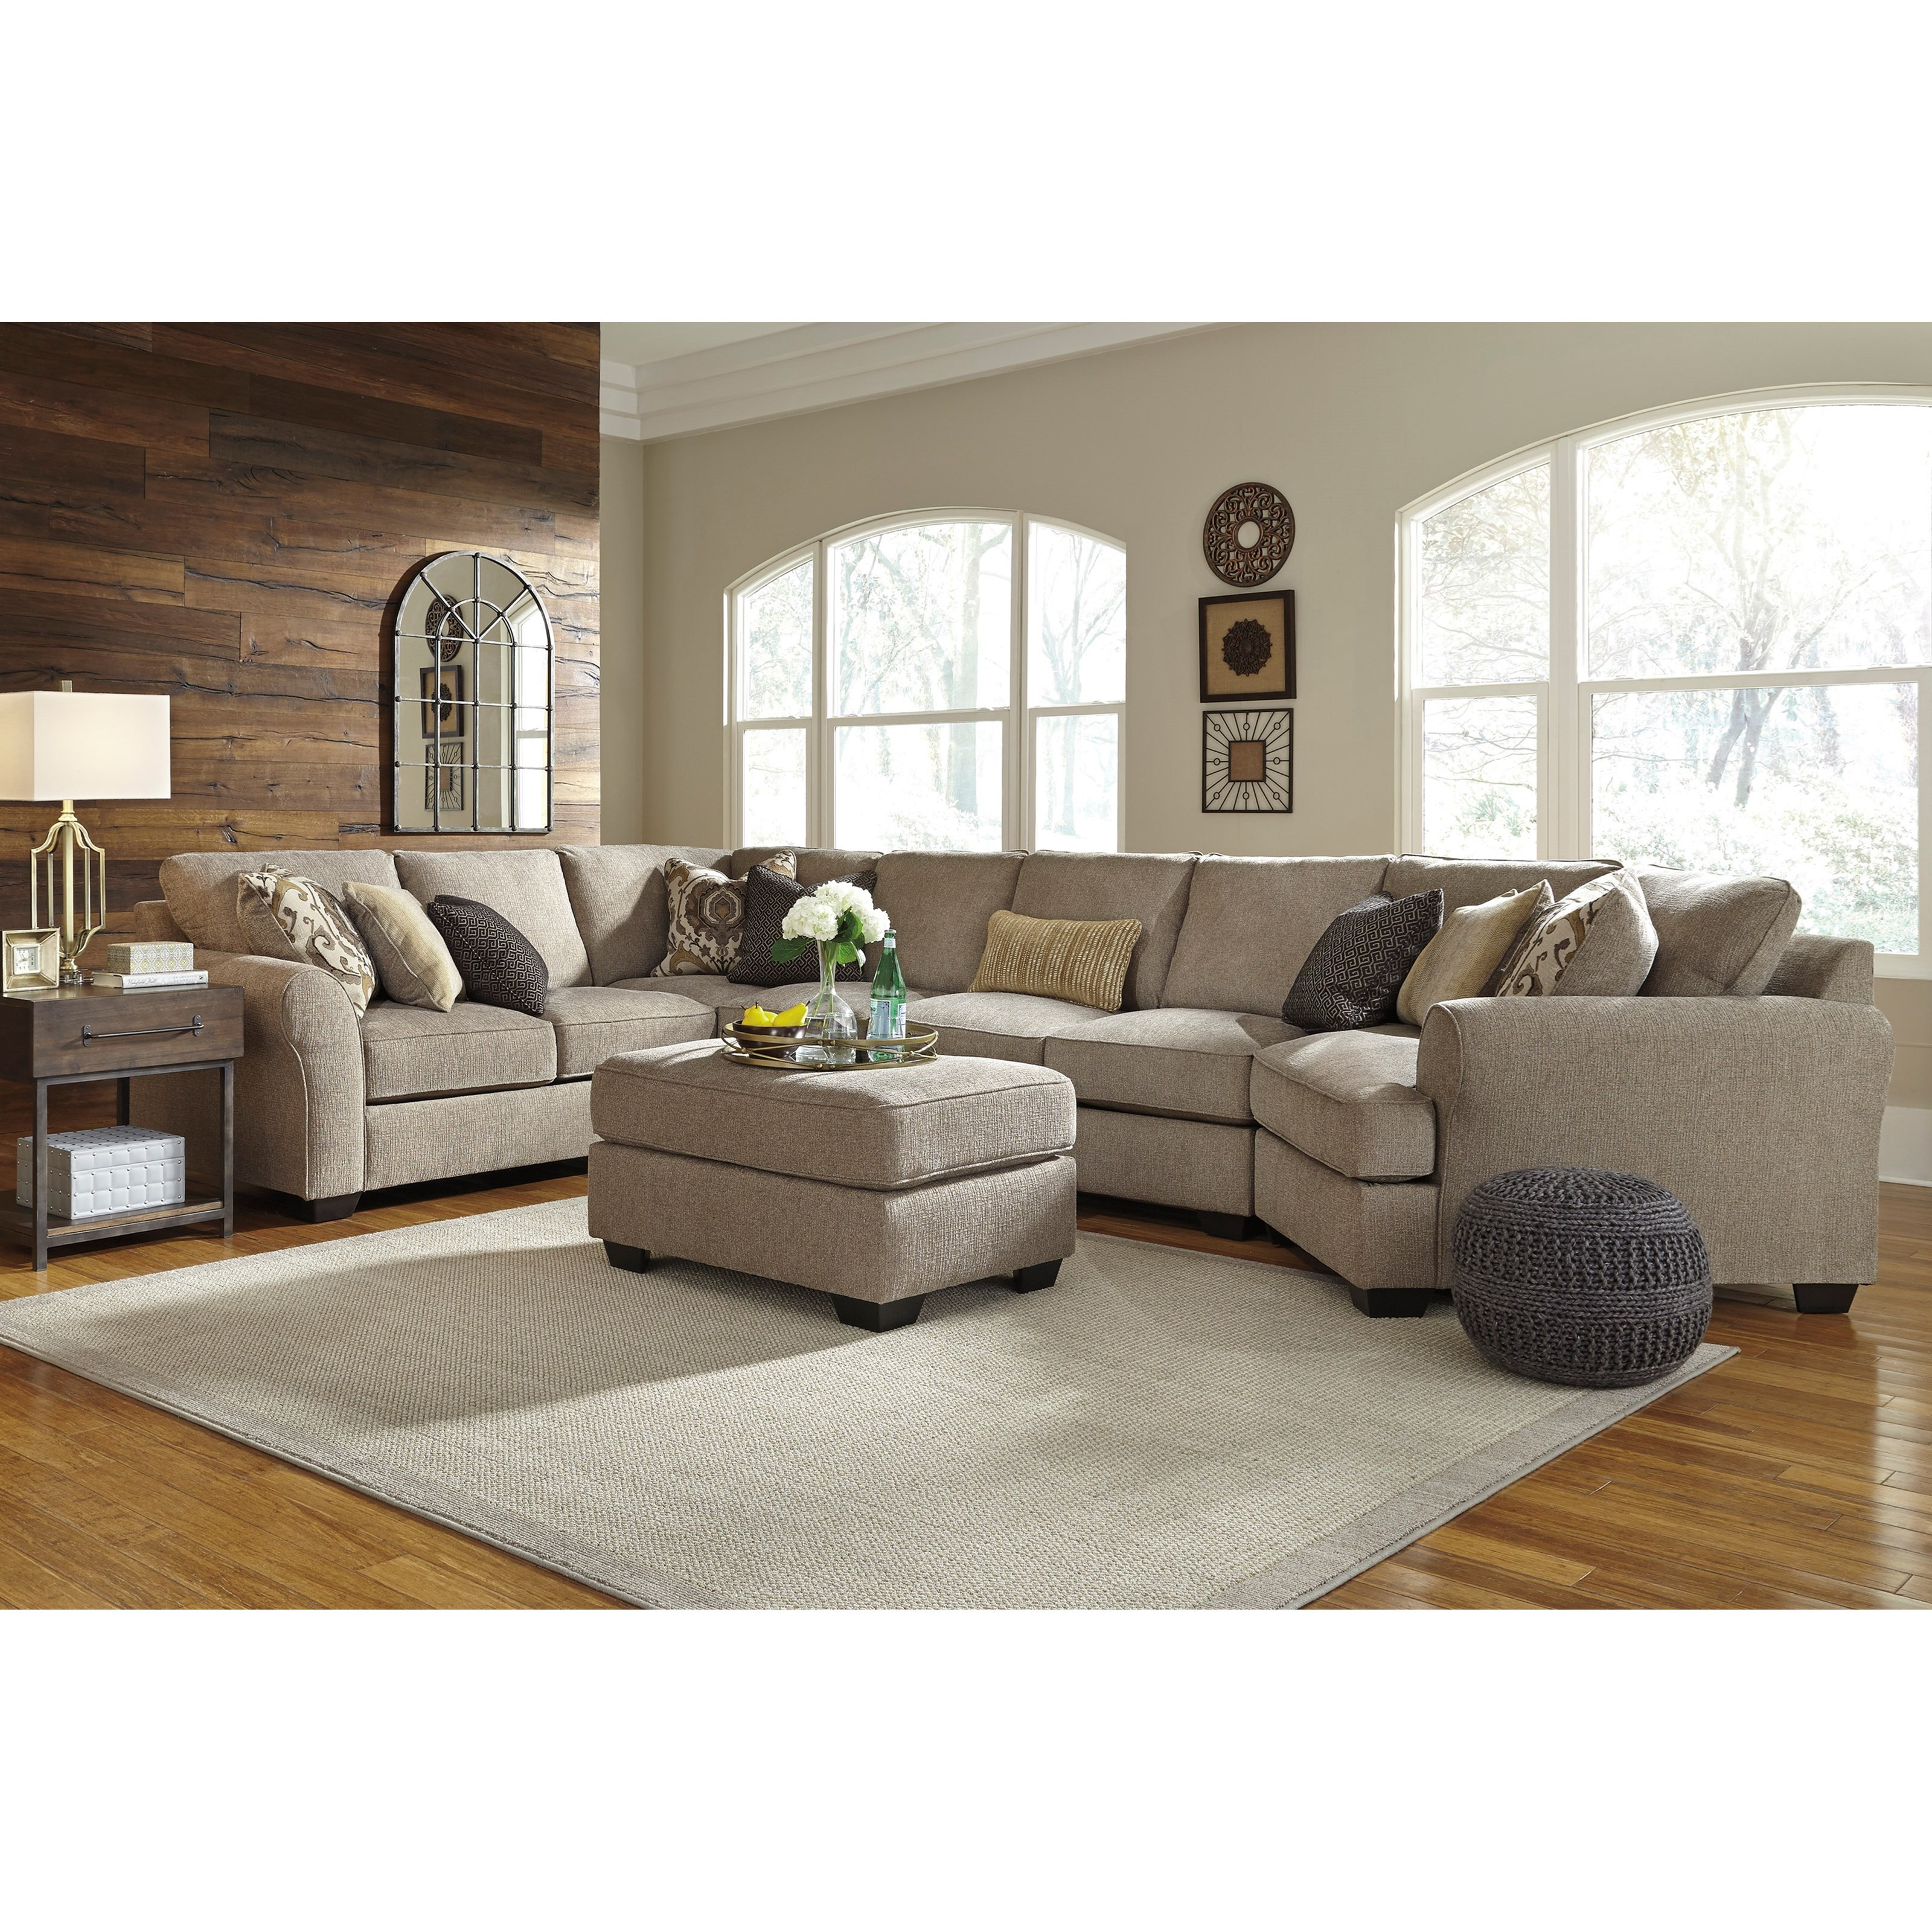 Benchcraft Pantomine 4 Piece Sectional With Right Cuddler